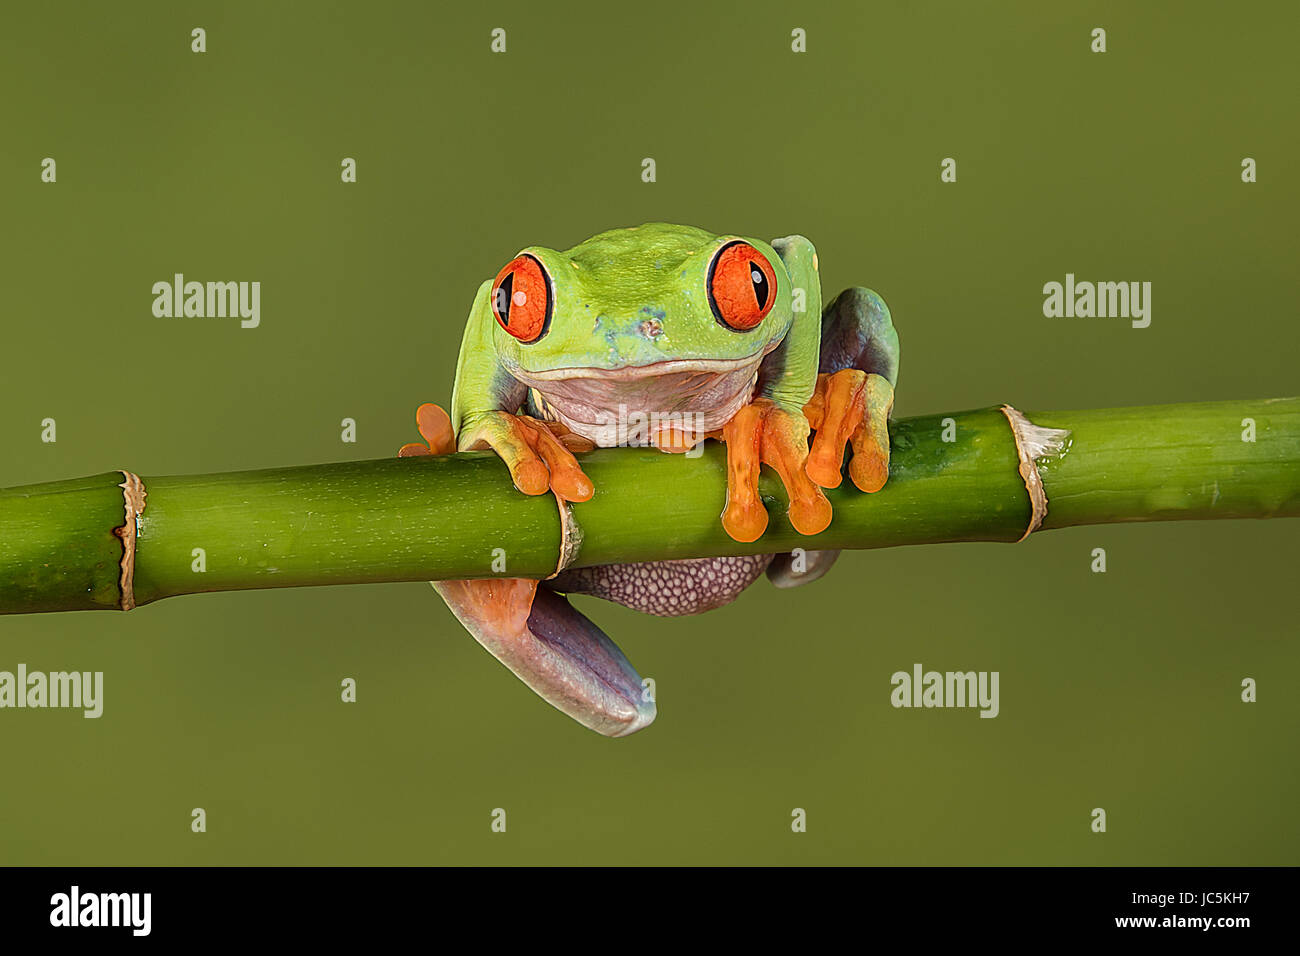 A close up portrait of a red eyed tree frog hanging on to a bamboo shoot looking forward and about to fall - Stock Image